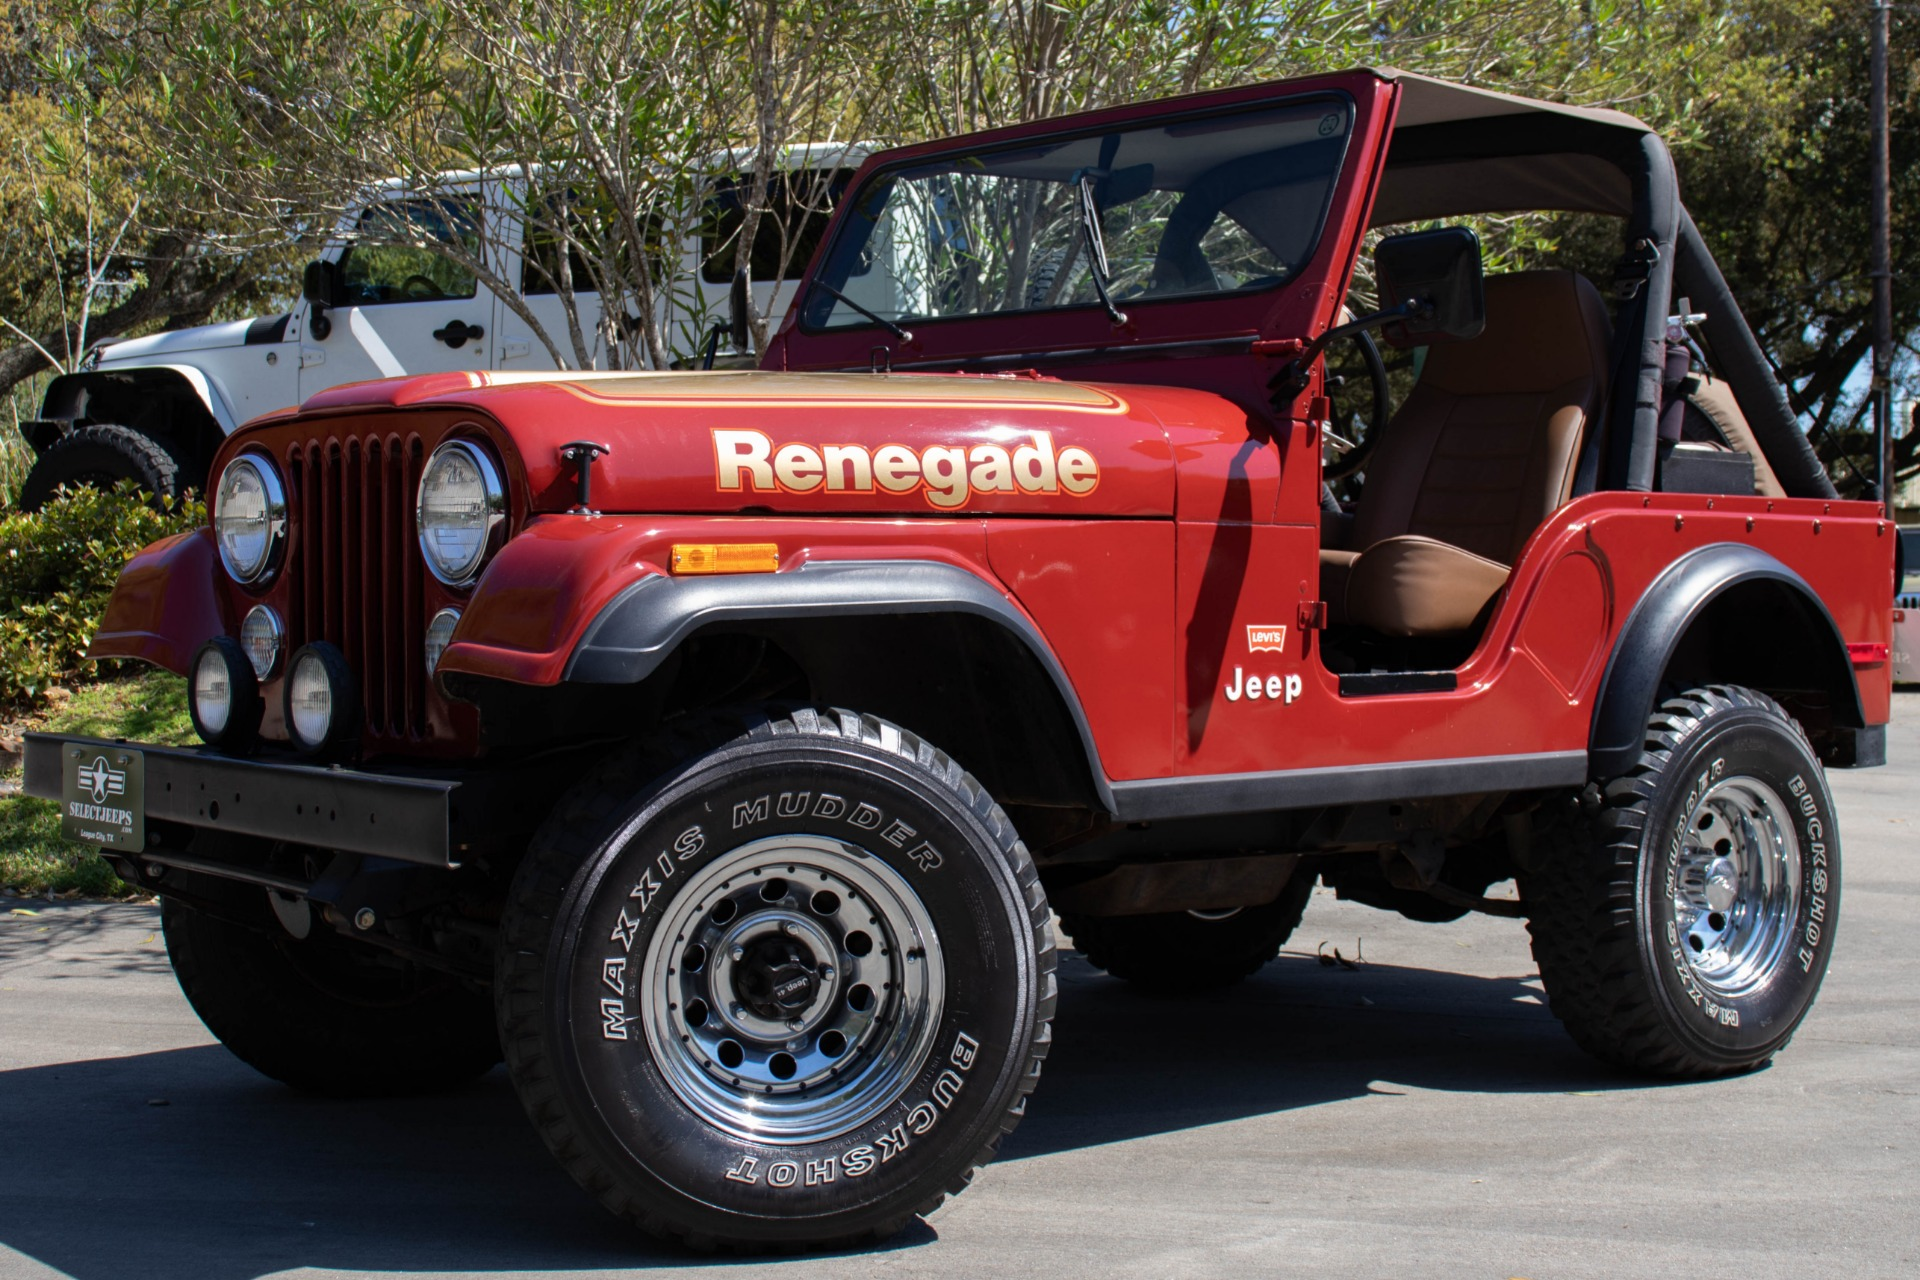 Used 1978 Jeep CJ5 Renegade For Sale (Special Pricing